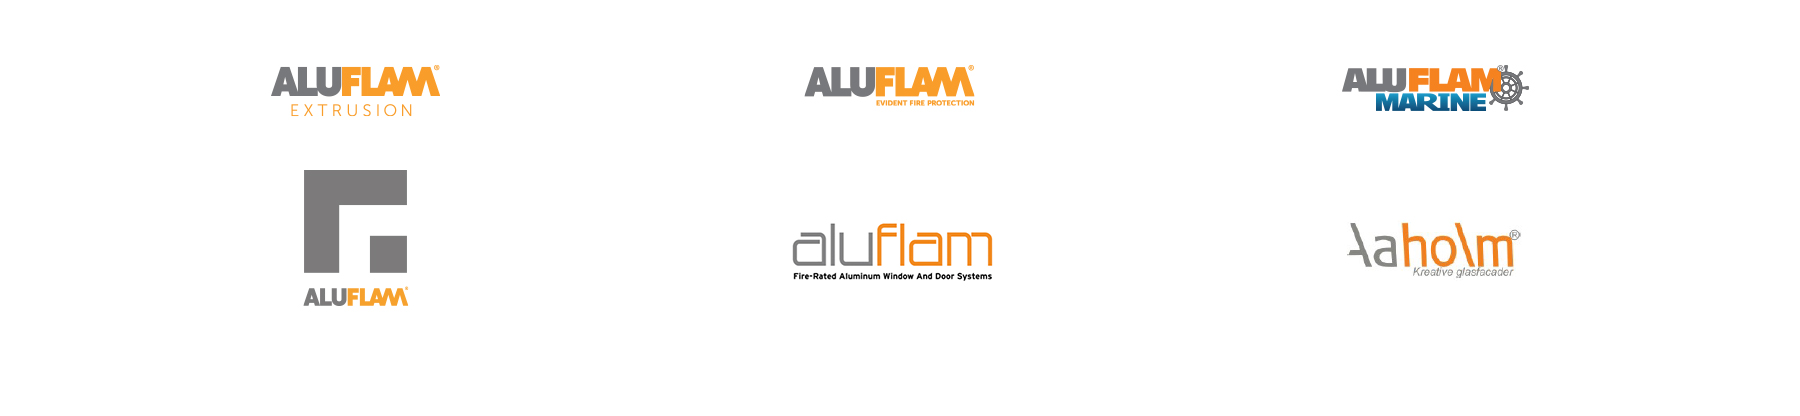 AluFlam-Group_1800x416_small_logo.jpg (1)